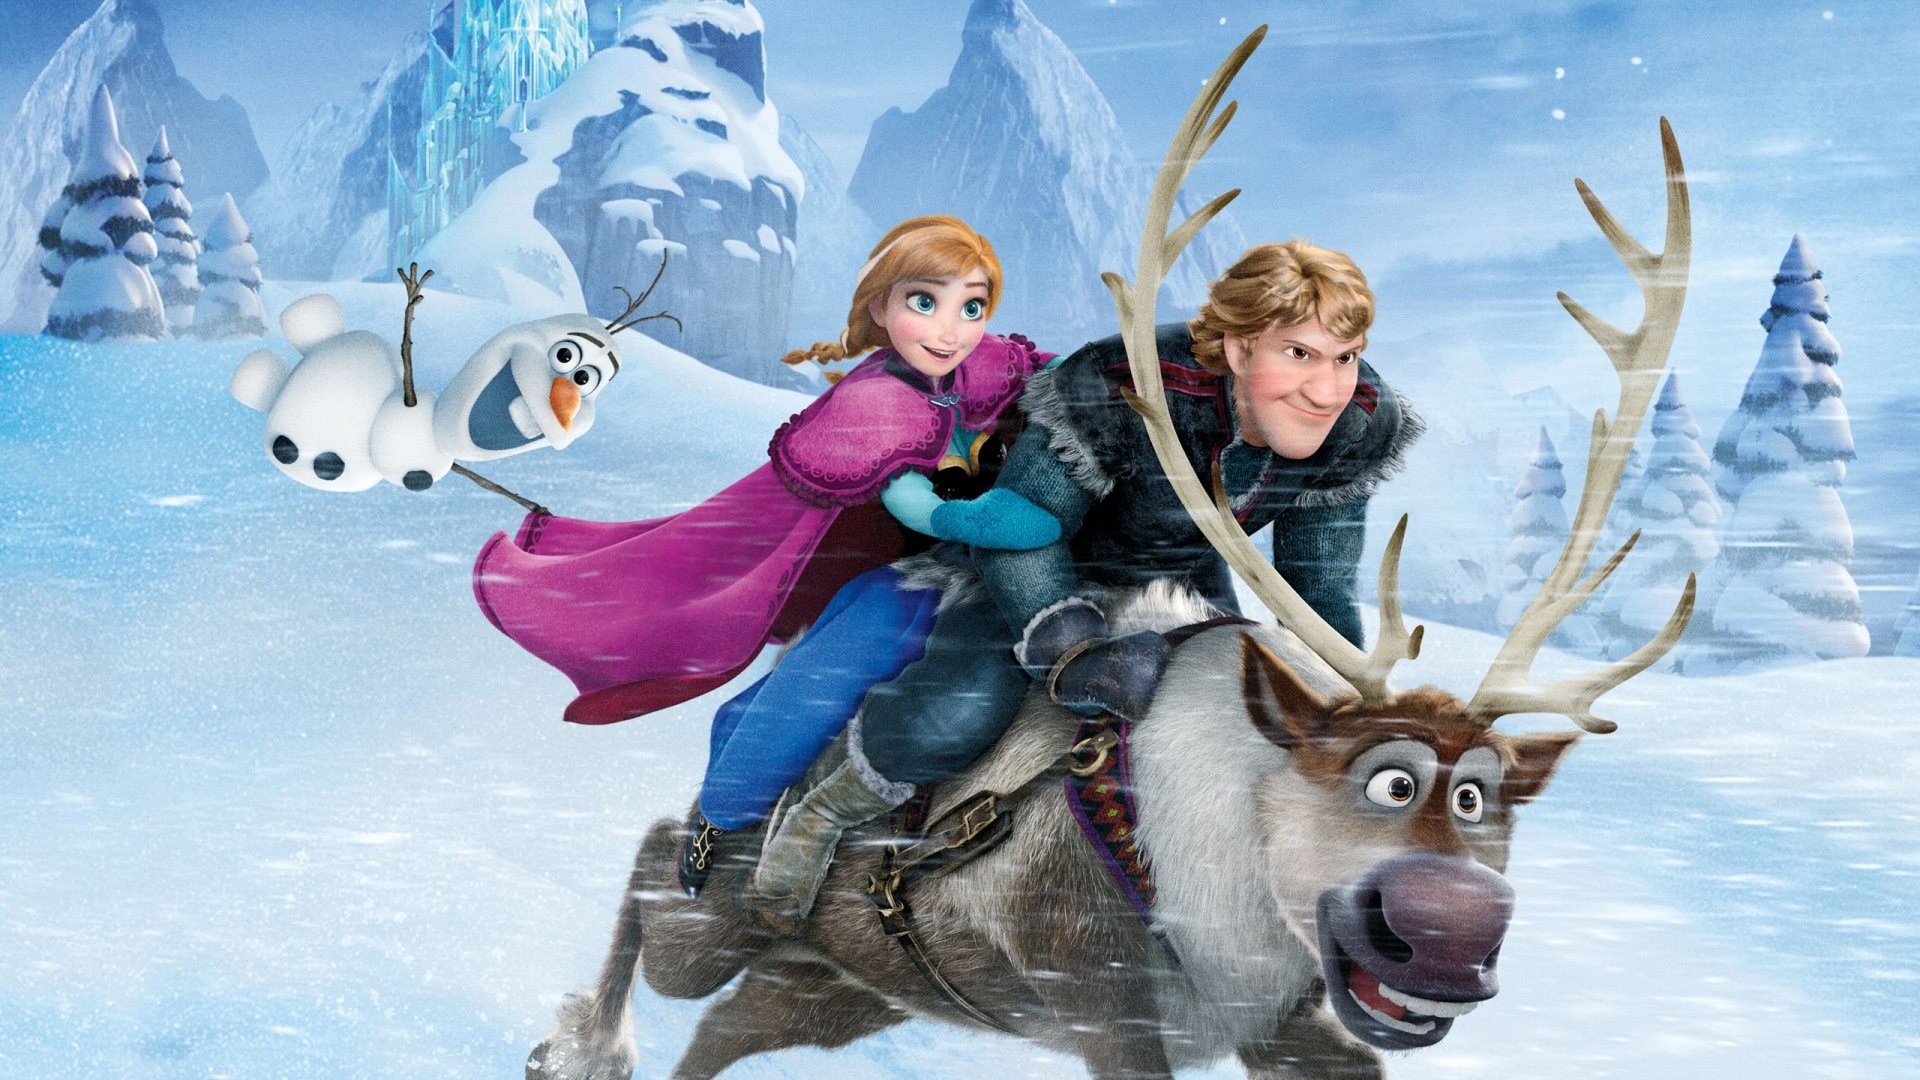 (l to r) Olaf (voiced by Josh Gad), Anna (voiced by Kristen Bell) and Kristoff (voiced by Jonathan Groff) race on the reindeer Sven in Frozen (2013)